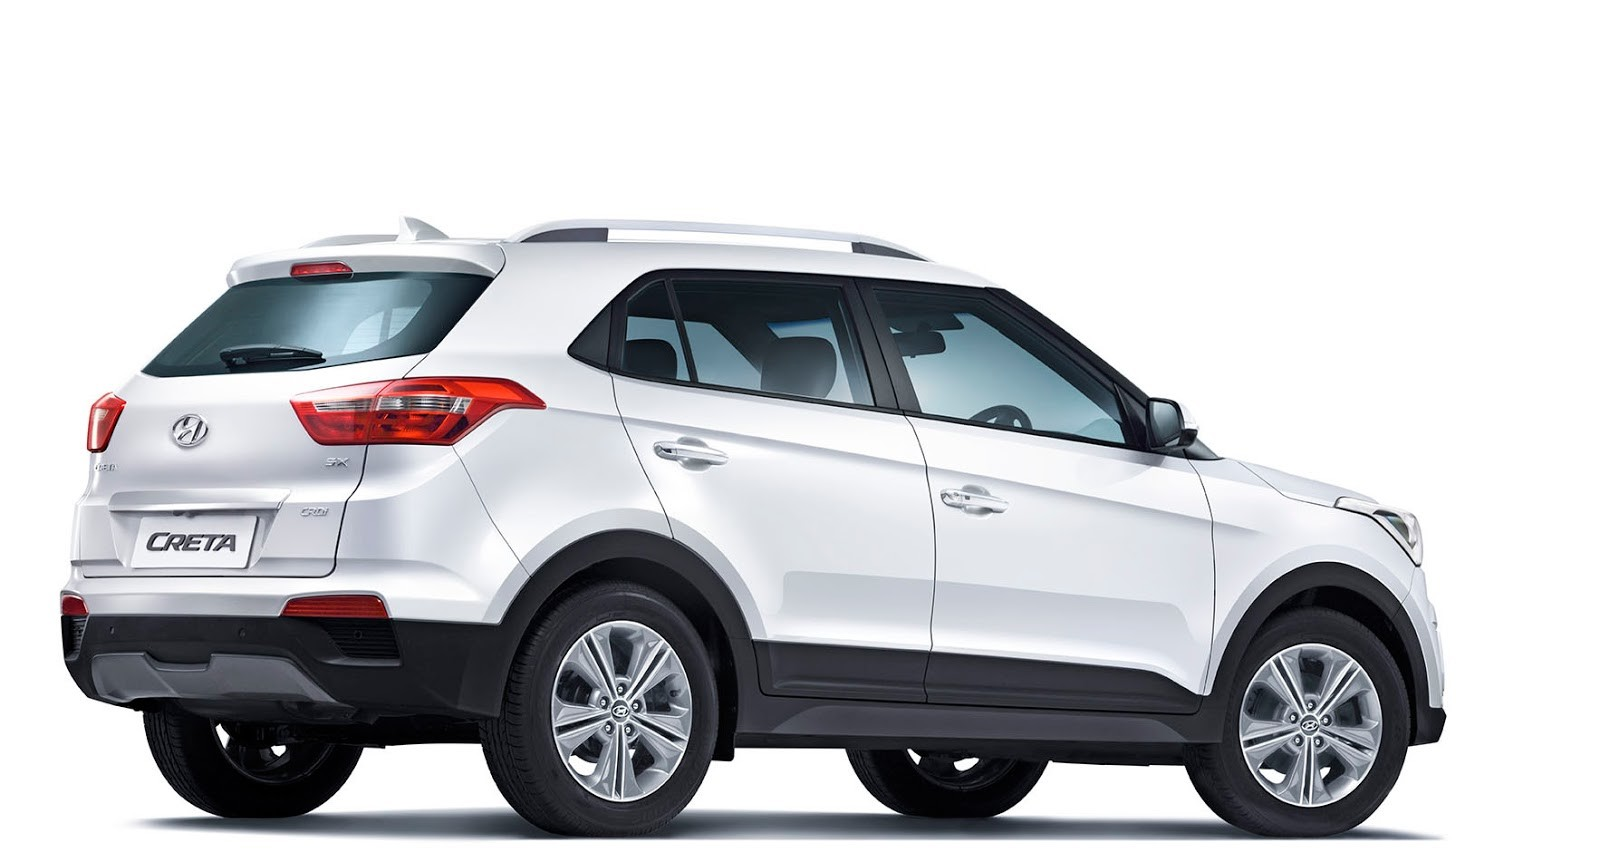 Hyundai Creta photo 167832